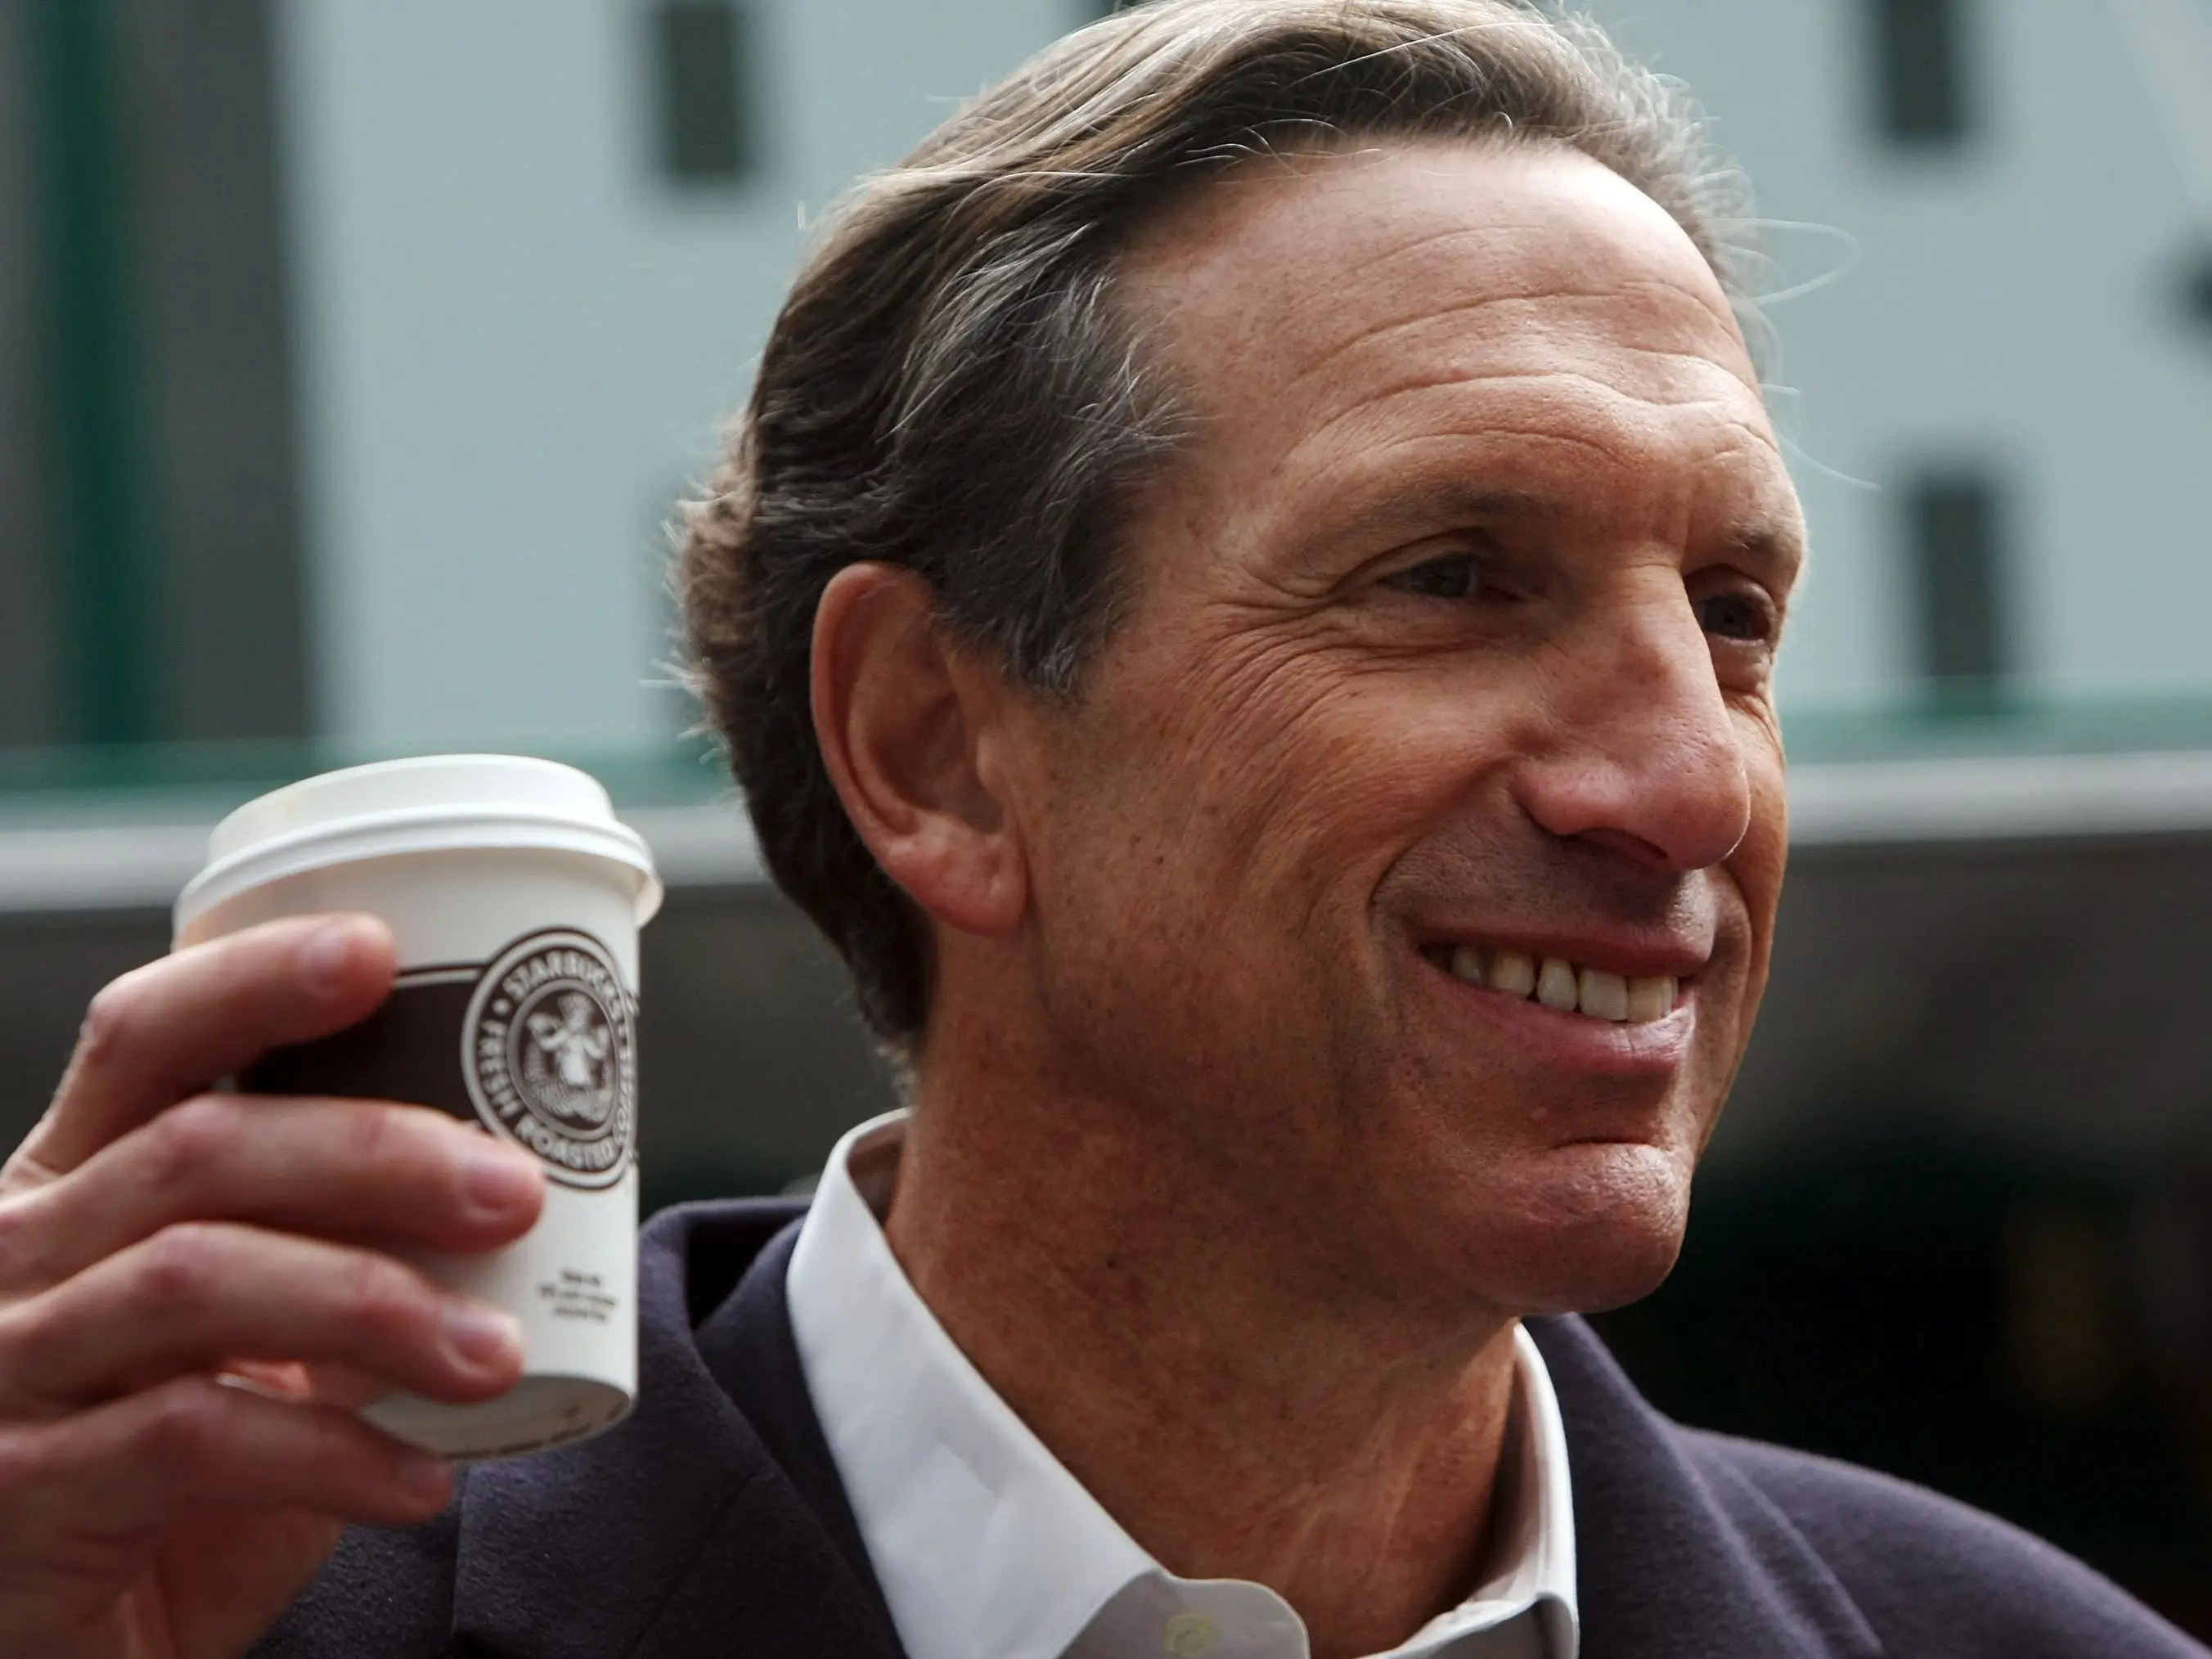 Howard Schultz grew up in the Brooklyn projects before becoming CEO of Starbucks.